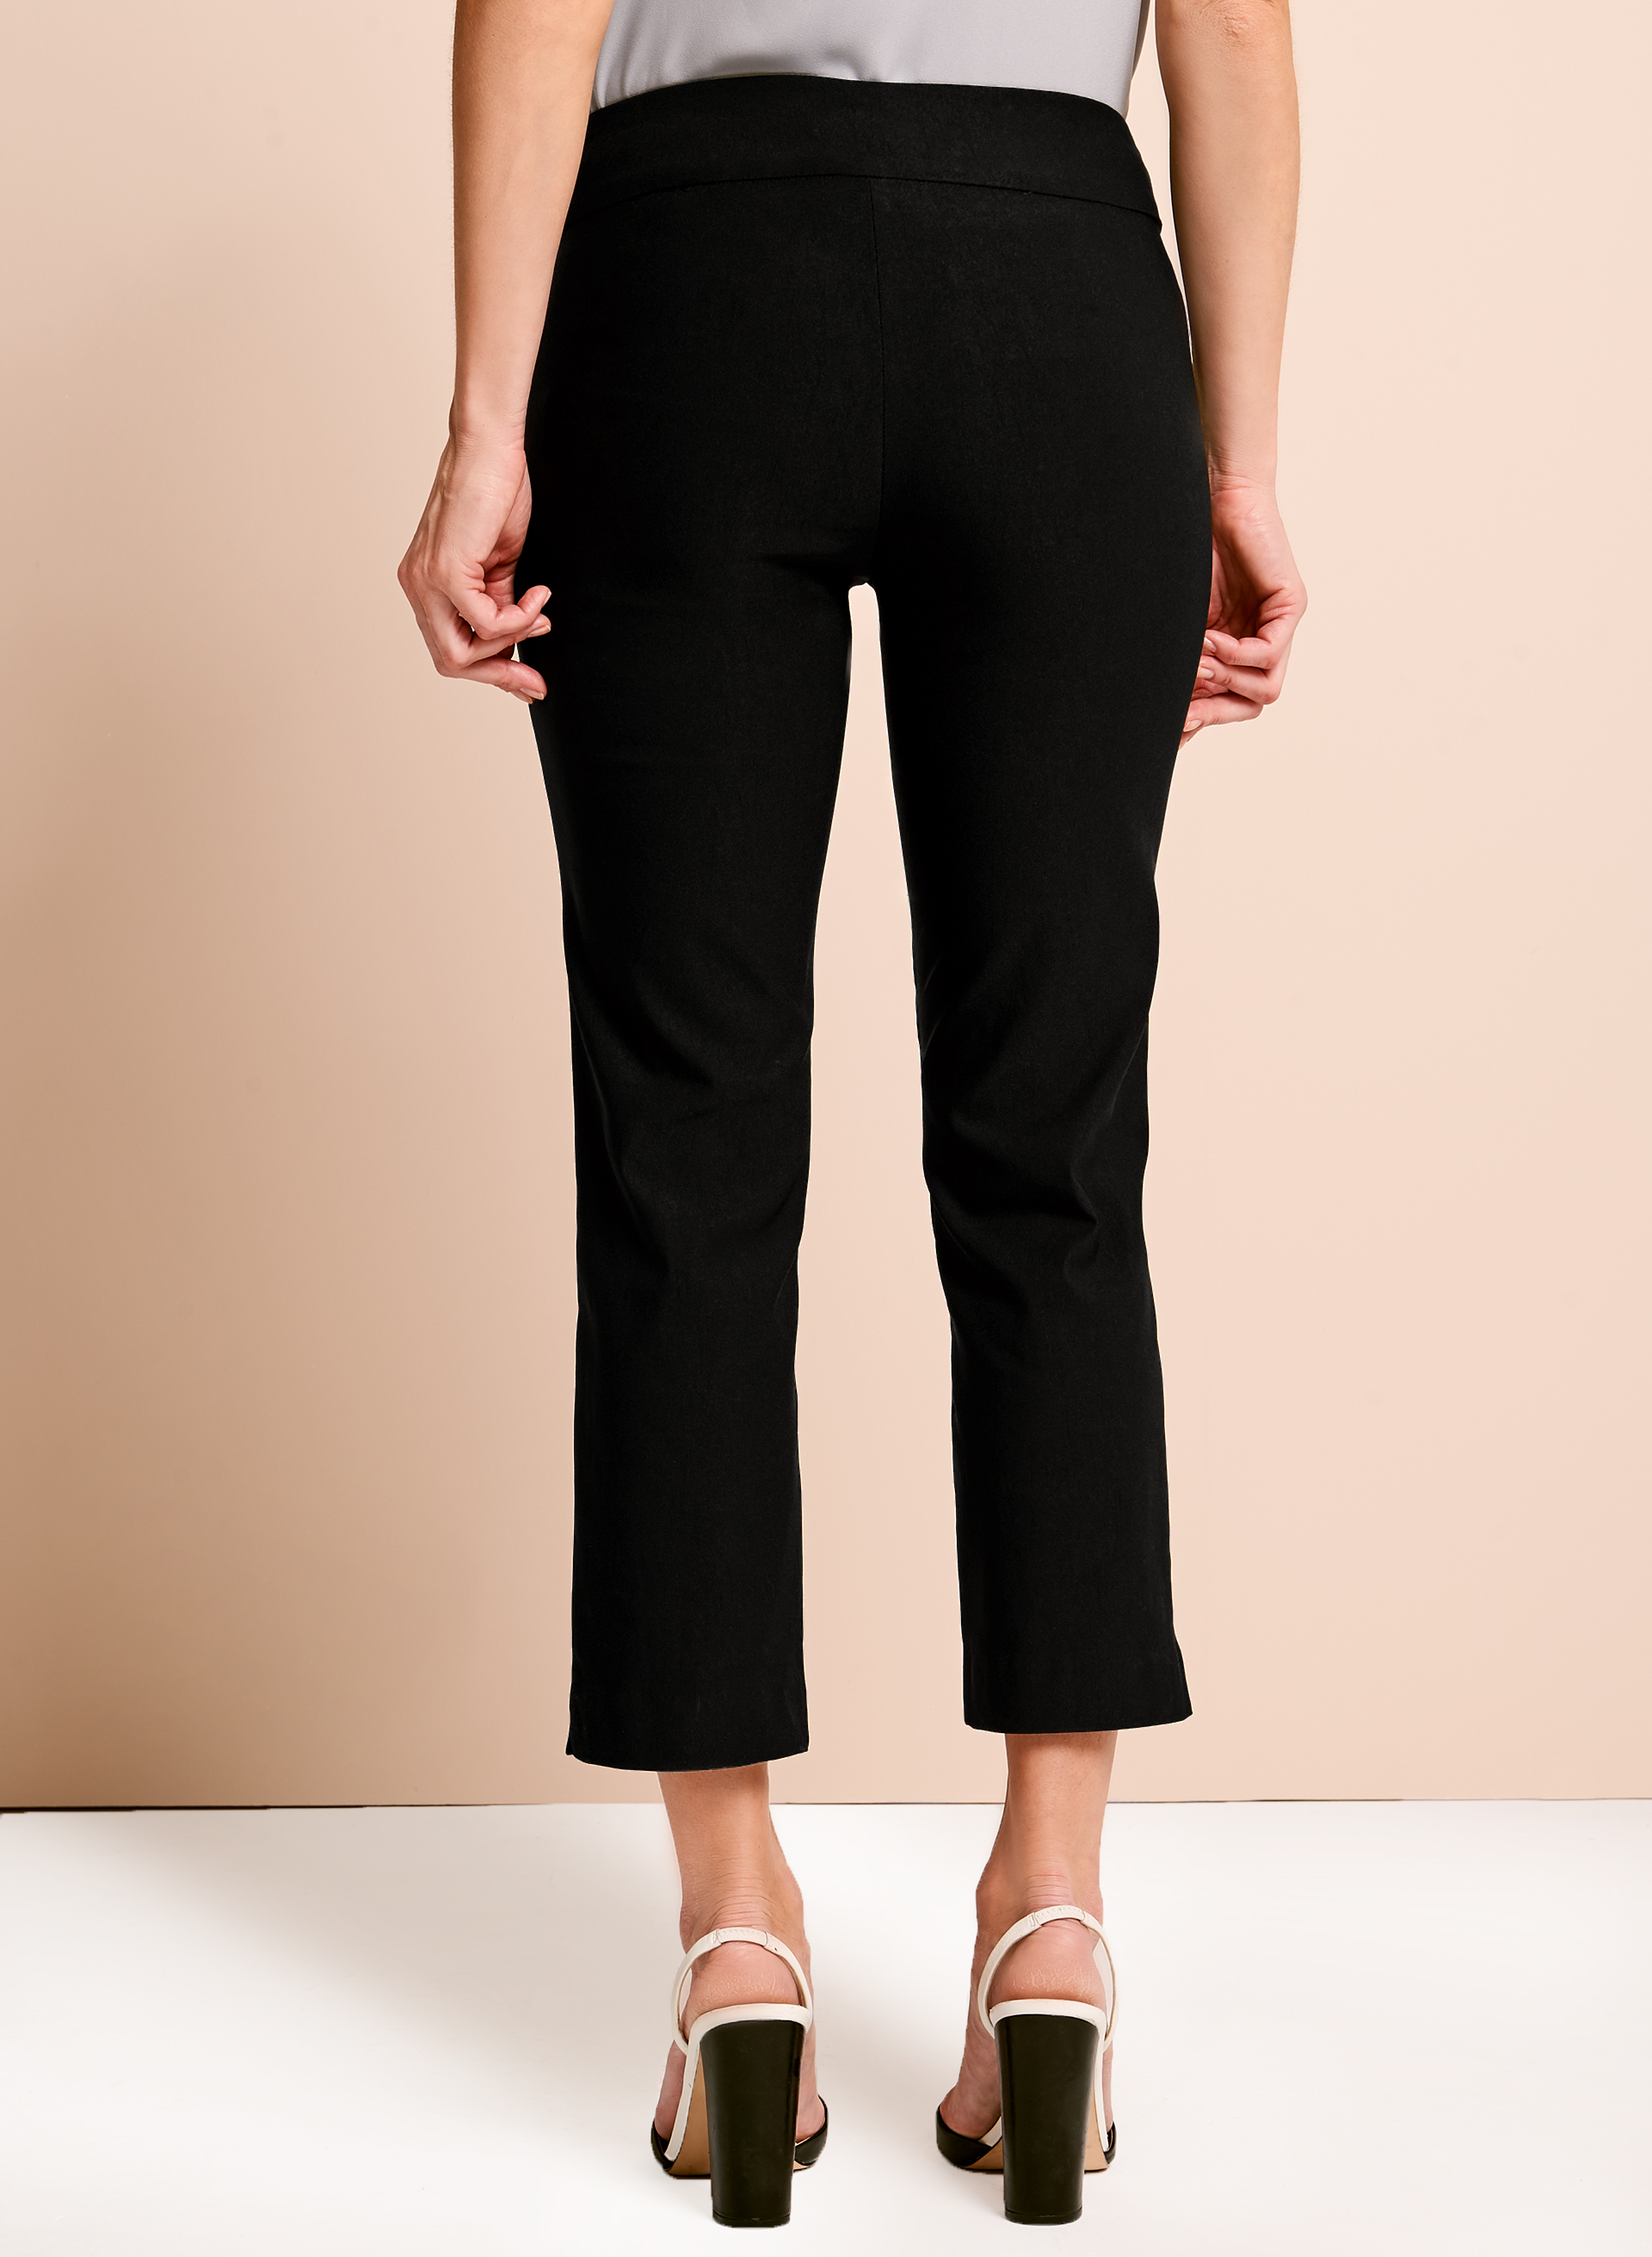 Capris. Shape up your wardrobe with fashionable bottoms like capris. With amazing styles for casual wear, exercising and even for the office, you're sure to find the perfect pants .